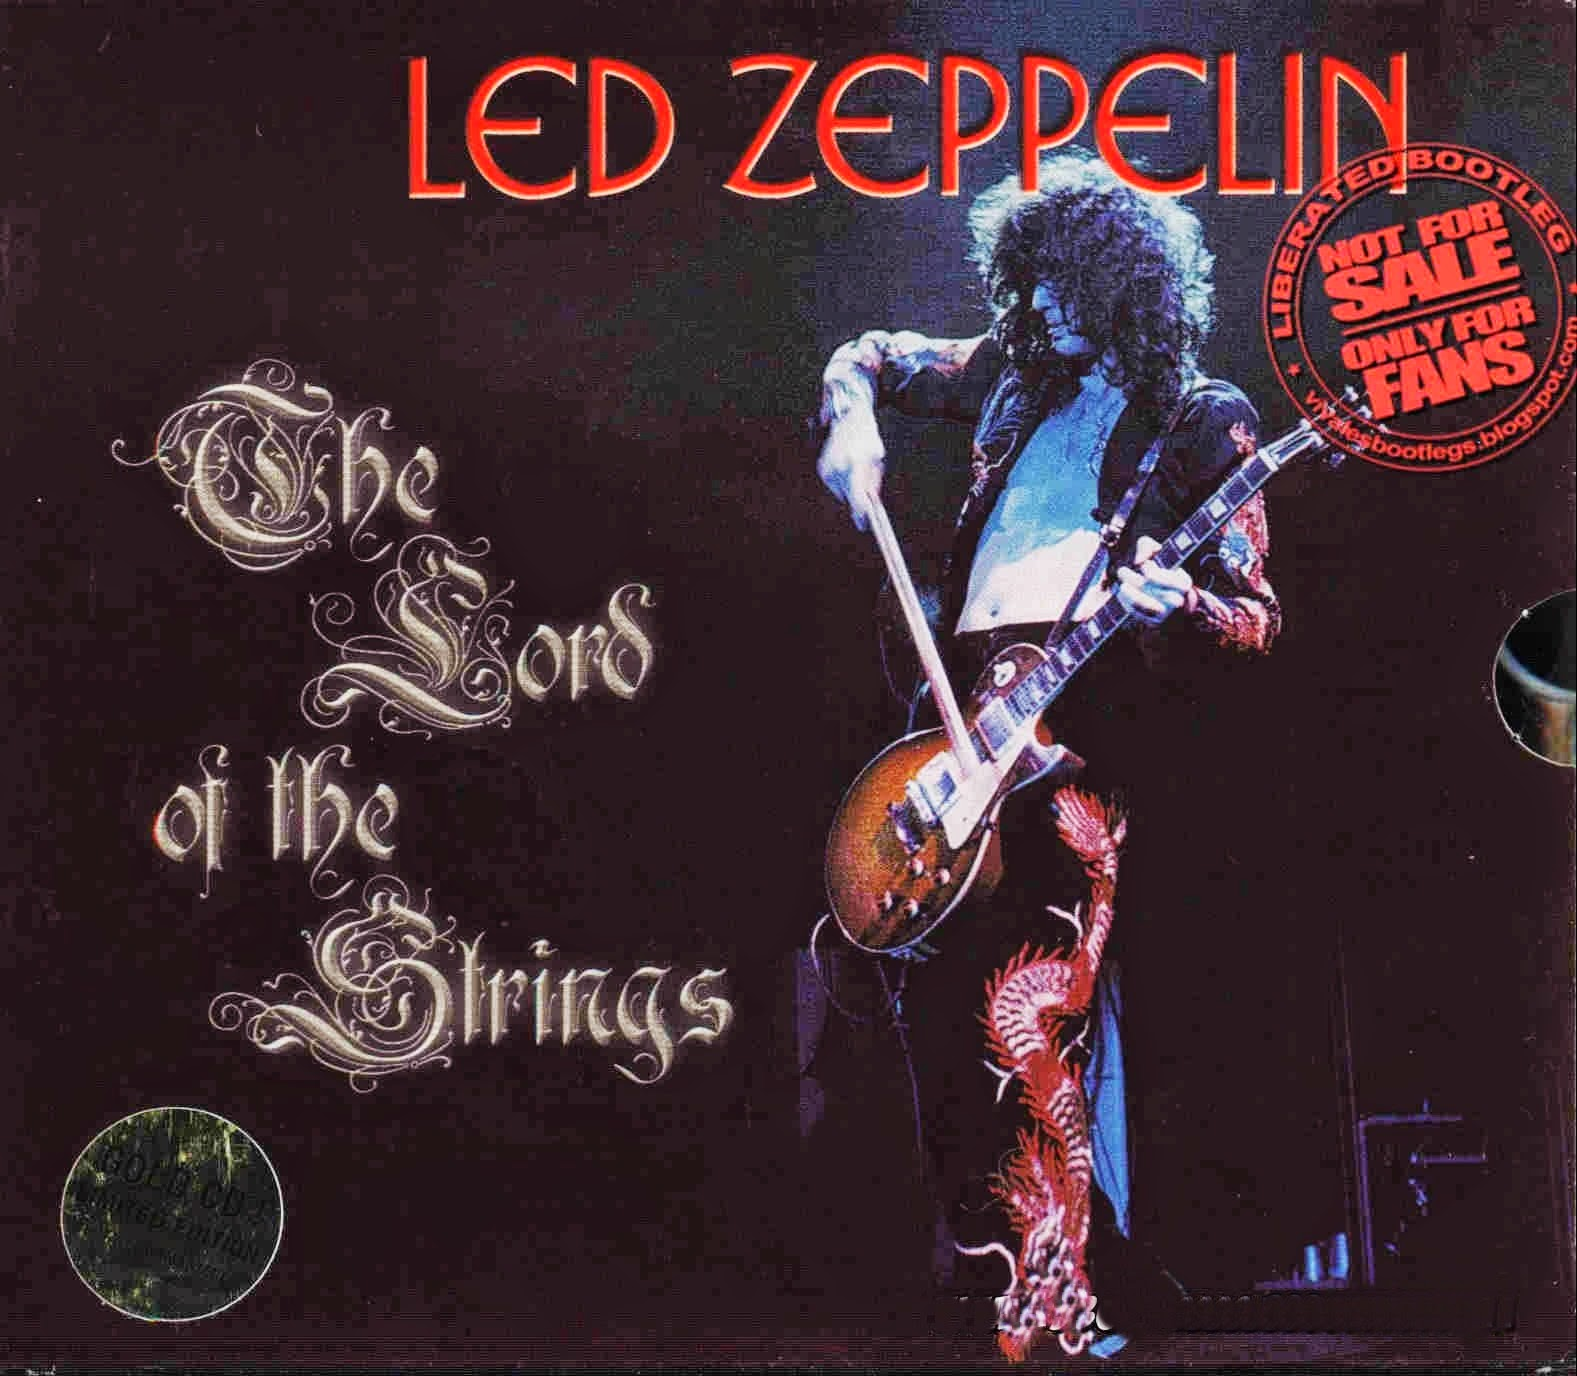 Led Zeppelin: The Lord Of The Strings. (Original Master Series Label 6cd Box Set Oms 175-180) bootleg